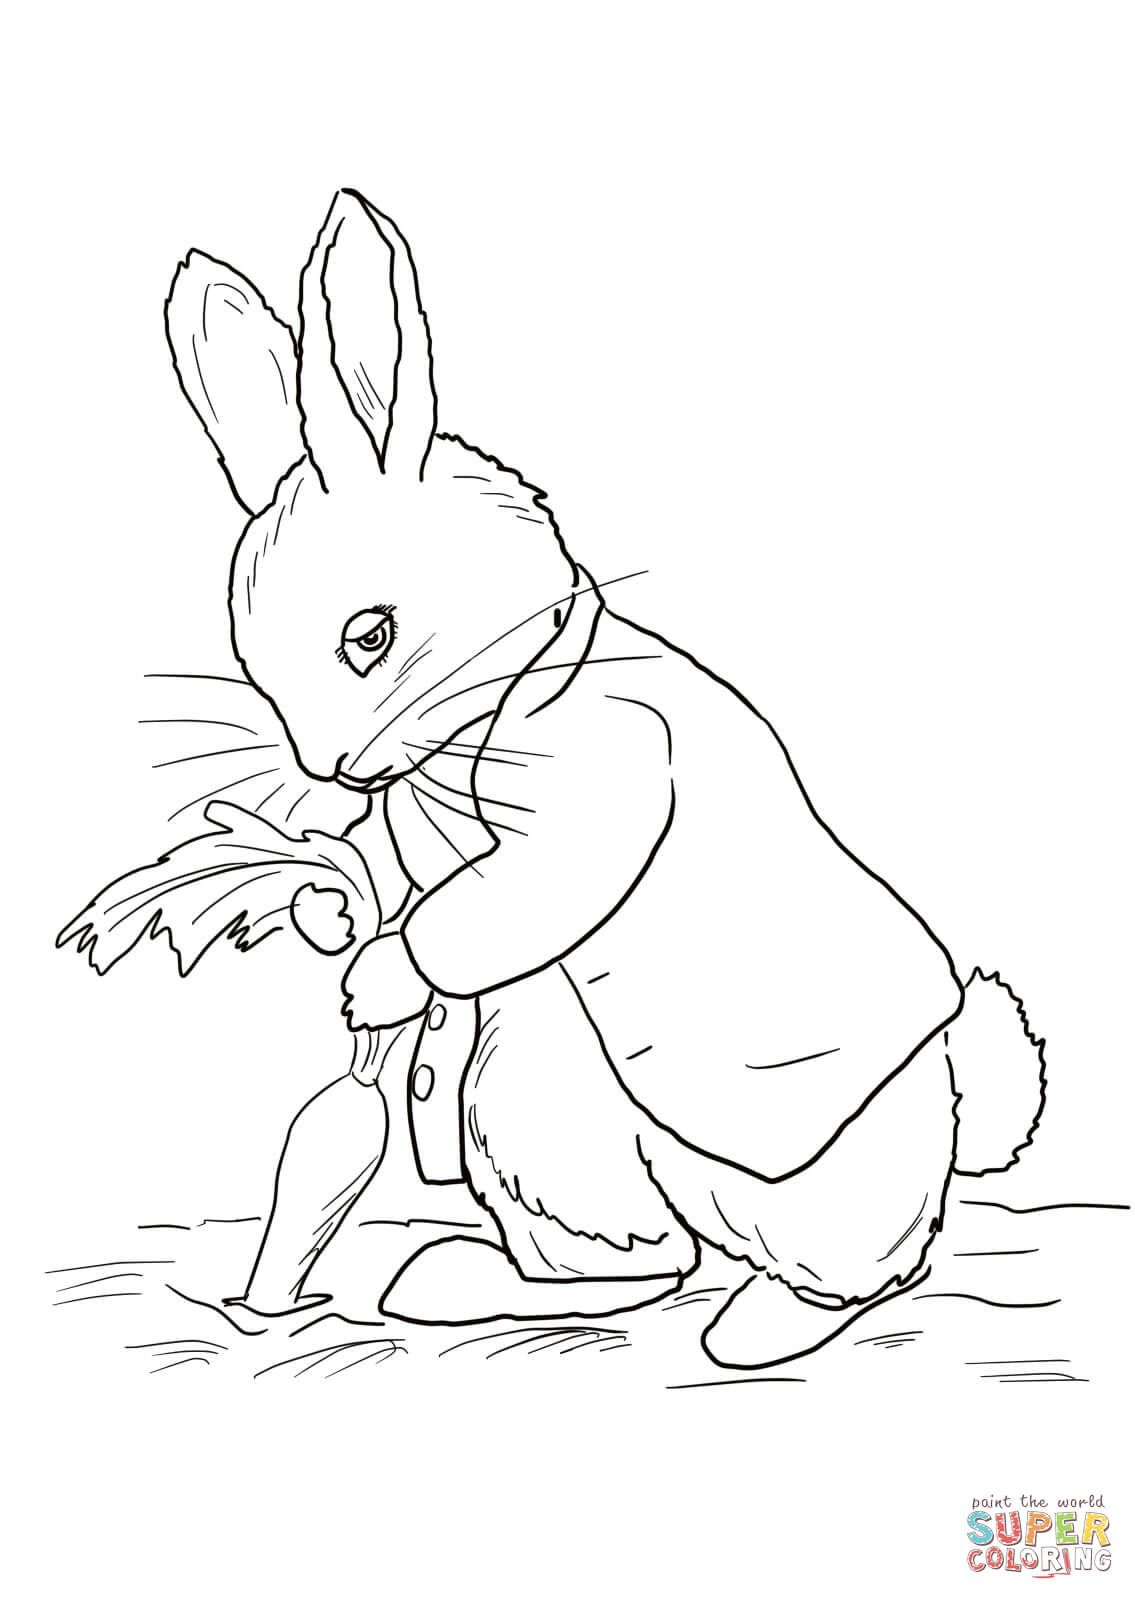 Peter Rabbit Stealing Carrots Coloring Page Free Printable Coloring Pages In 2020 Rabbit Colors Peter Rabbit And Friends Colouring Pages